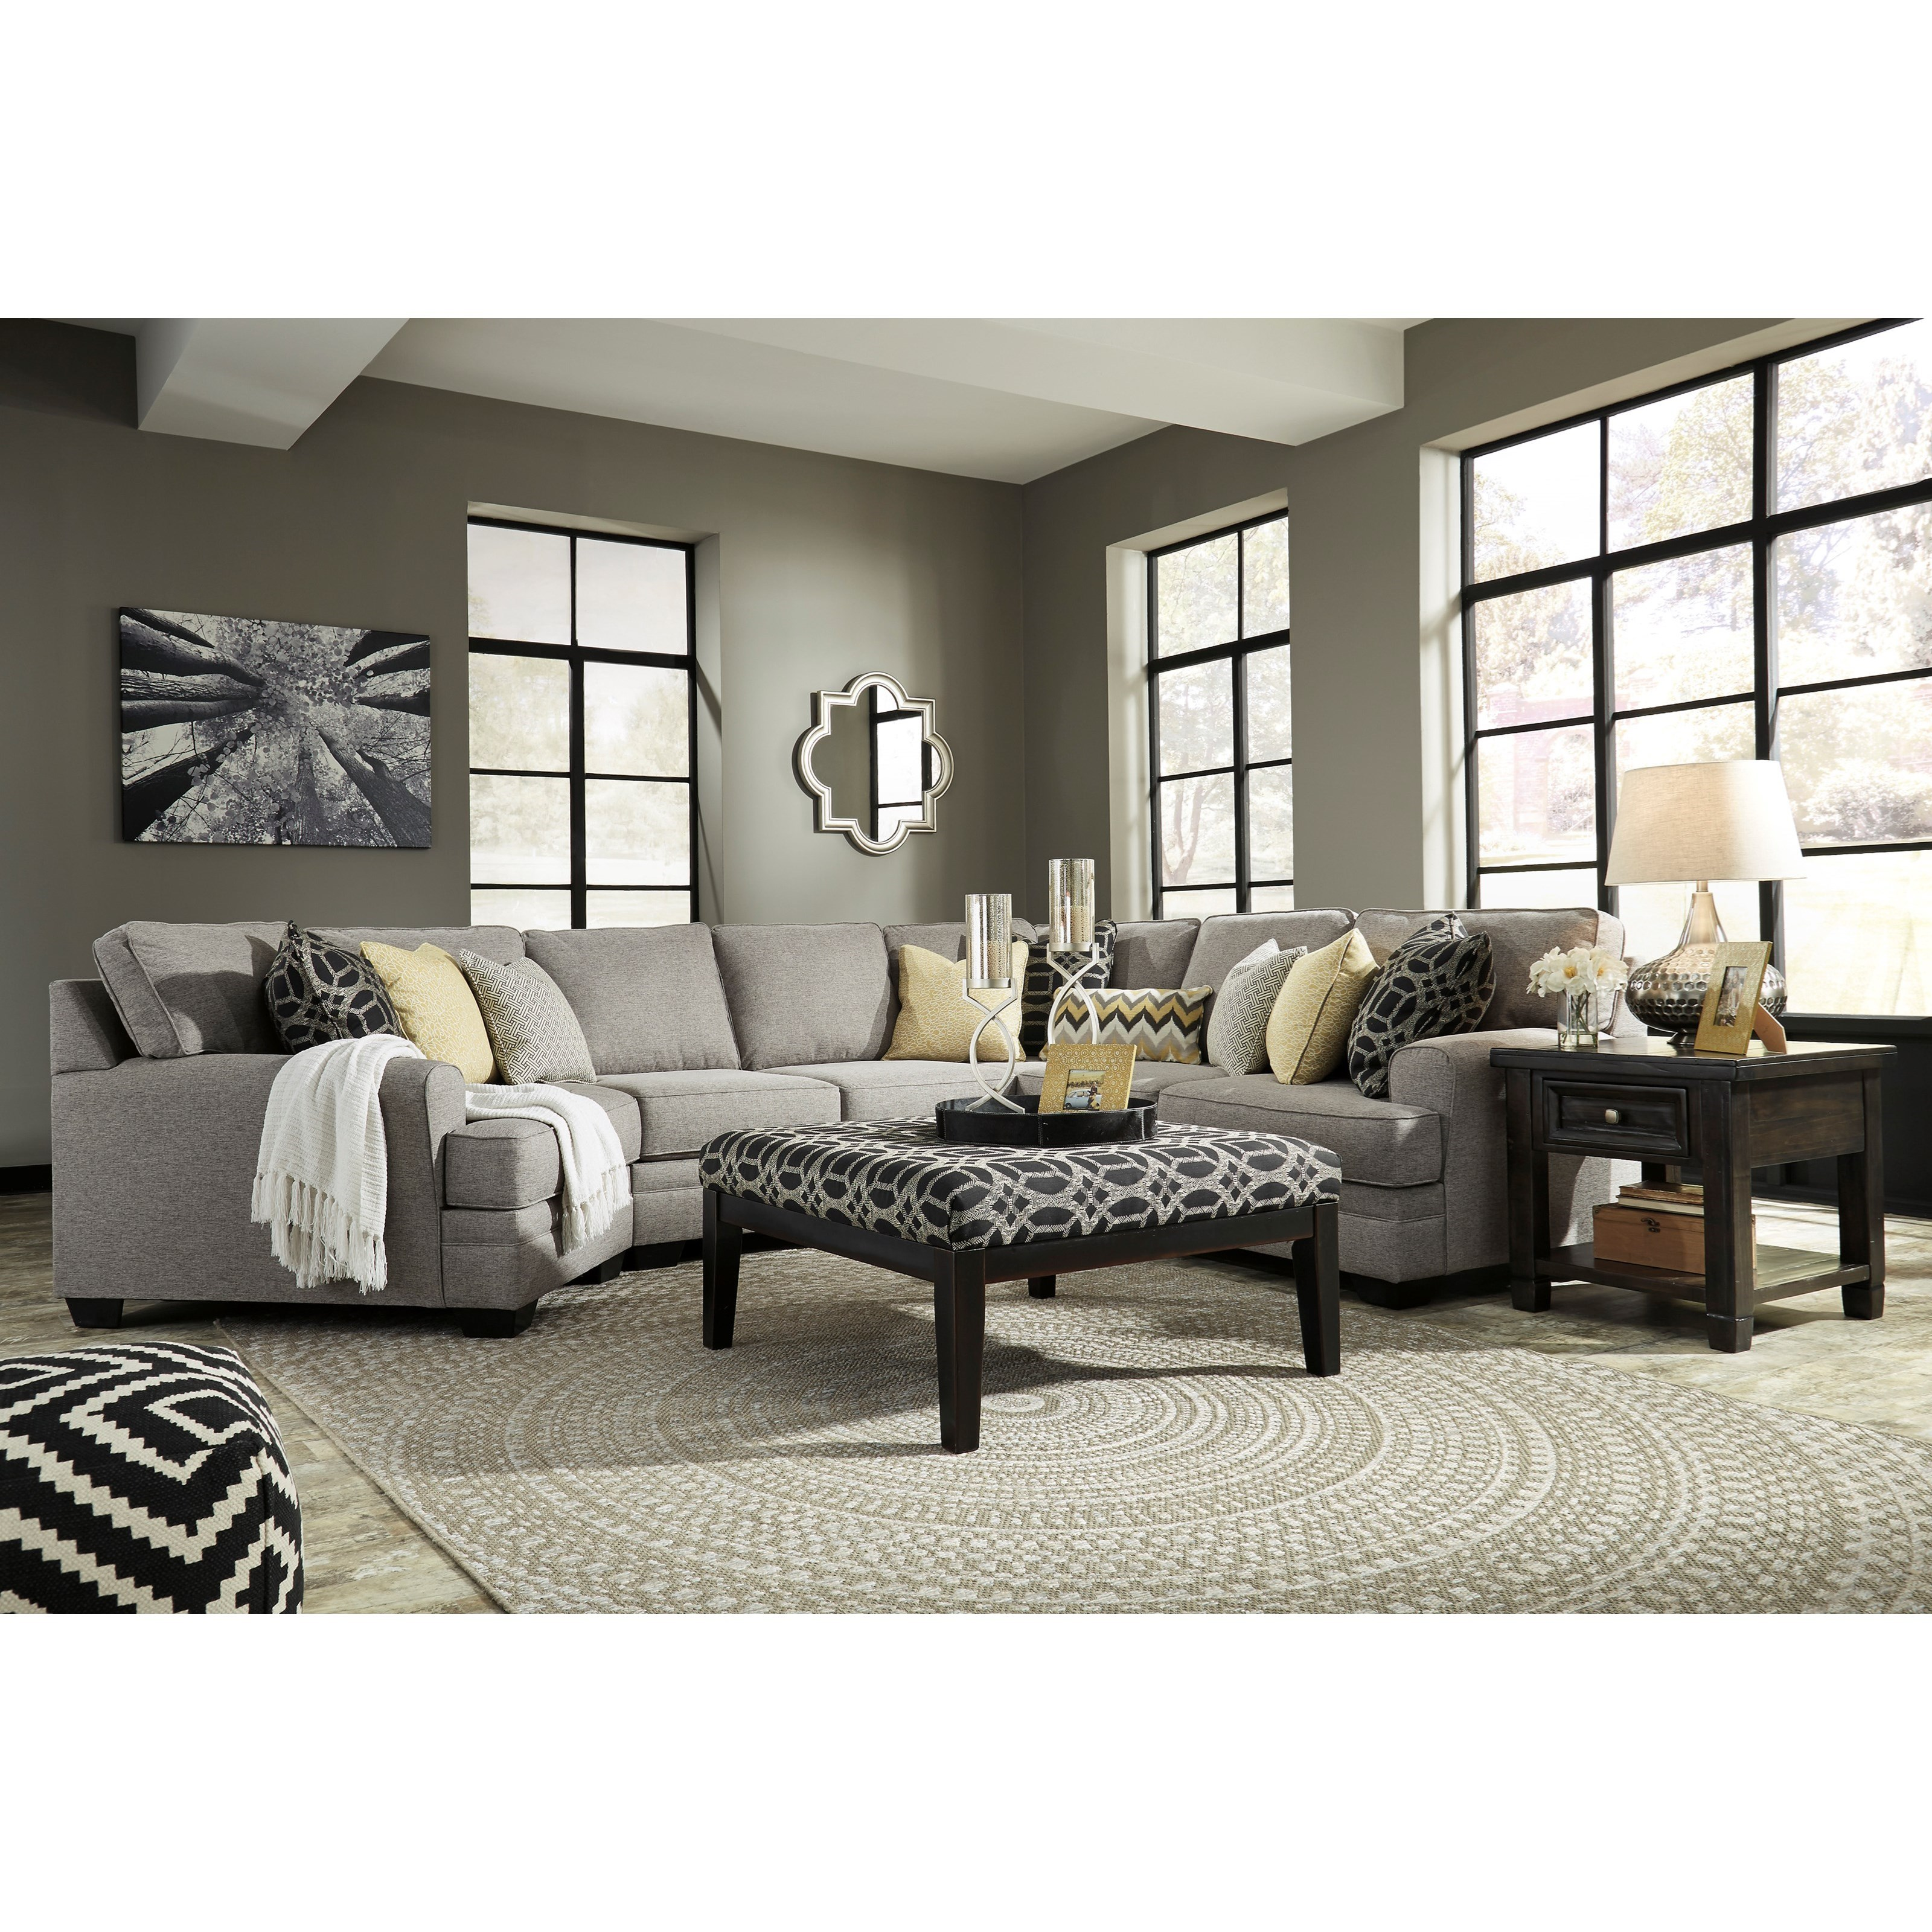 Benchcraft Cresson Stationary Living Room Group - Item Number: 54907 Living Room Group 13